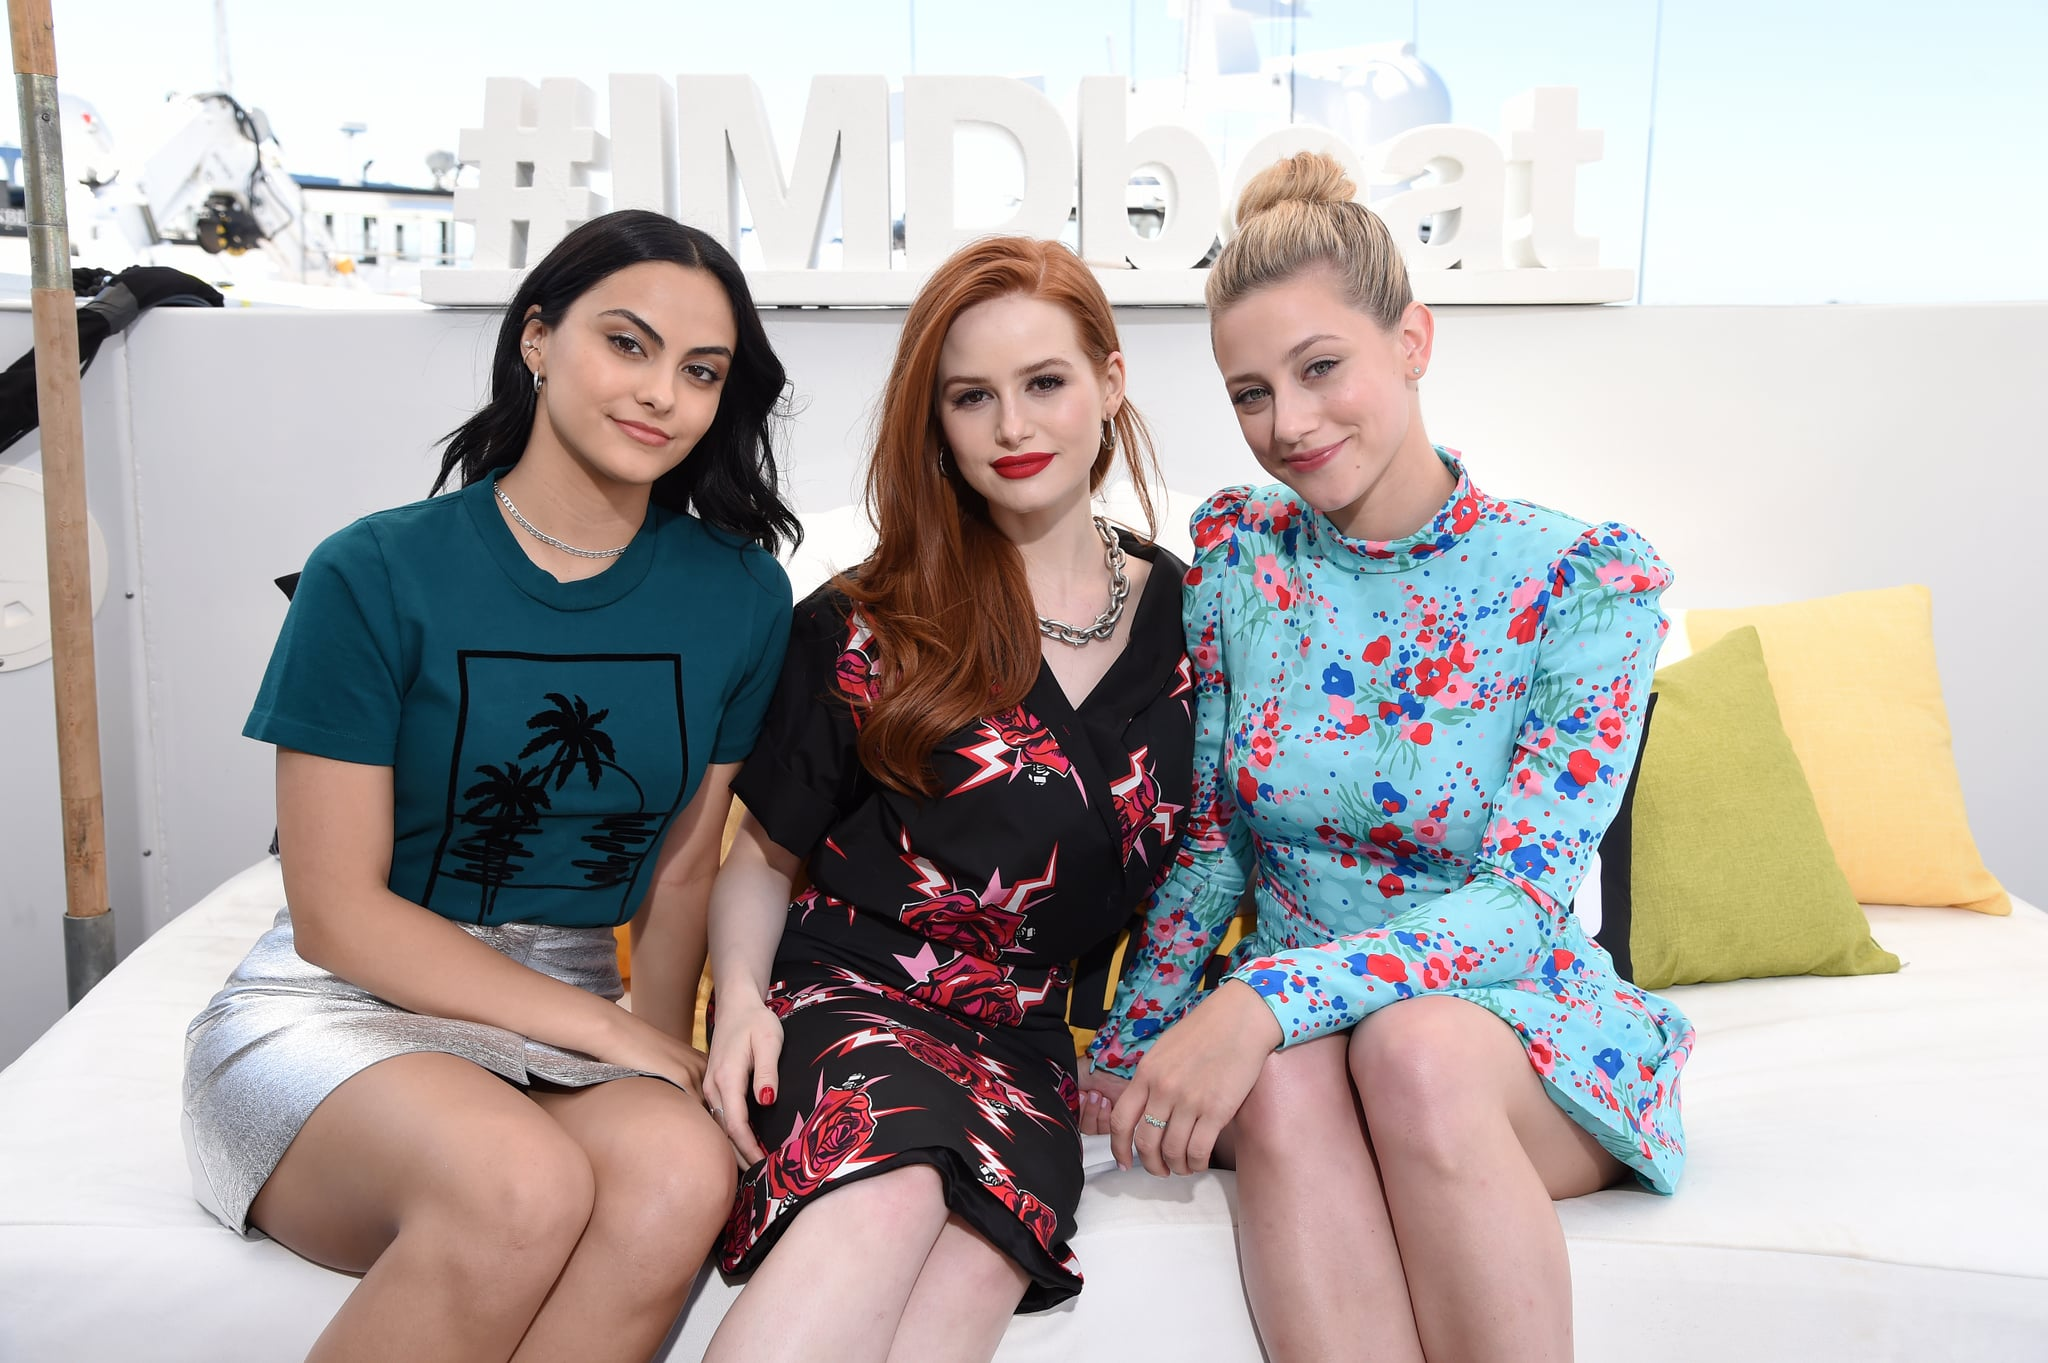 Camila Mendes, Madelaine Petsch and Lili Reinhart attend the #IMDboat at San Diego Comic-Con 2019: Day Three at the IMDb Yacht on July 20, 2019 in San Diego, California. (Photo by Michael Kovac/Getty Images for IMDb)